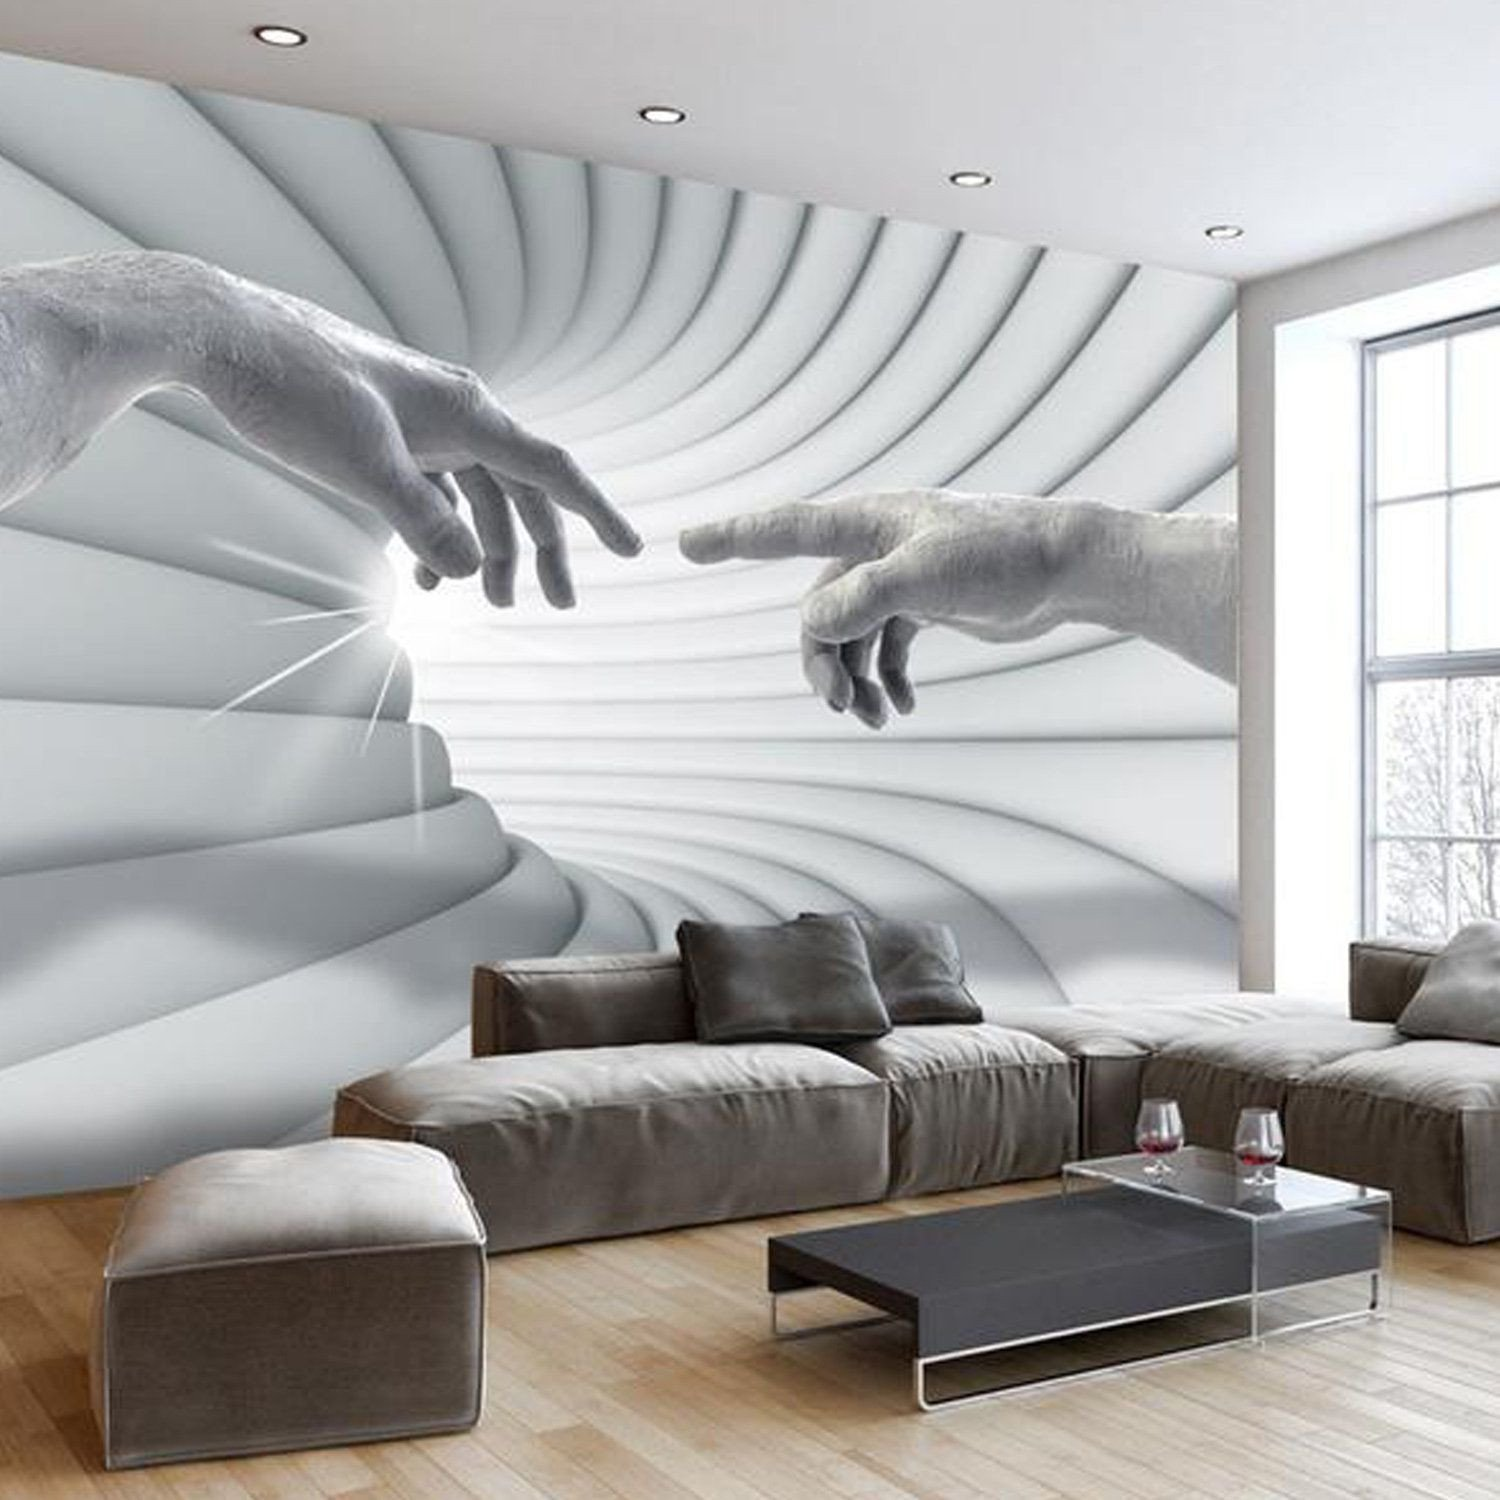 Wall Mural Ideas for Bedroom Unique 3d Temporary Wallpaper 3d Wallpaper Mural Removable